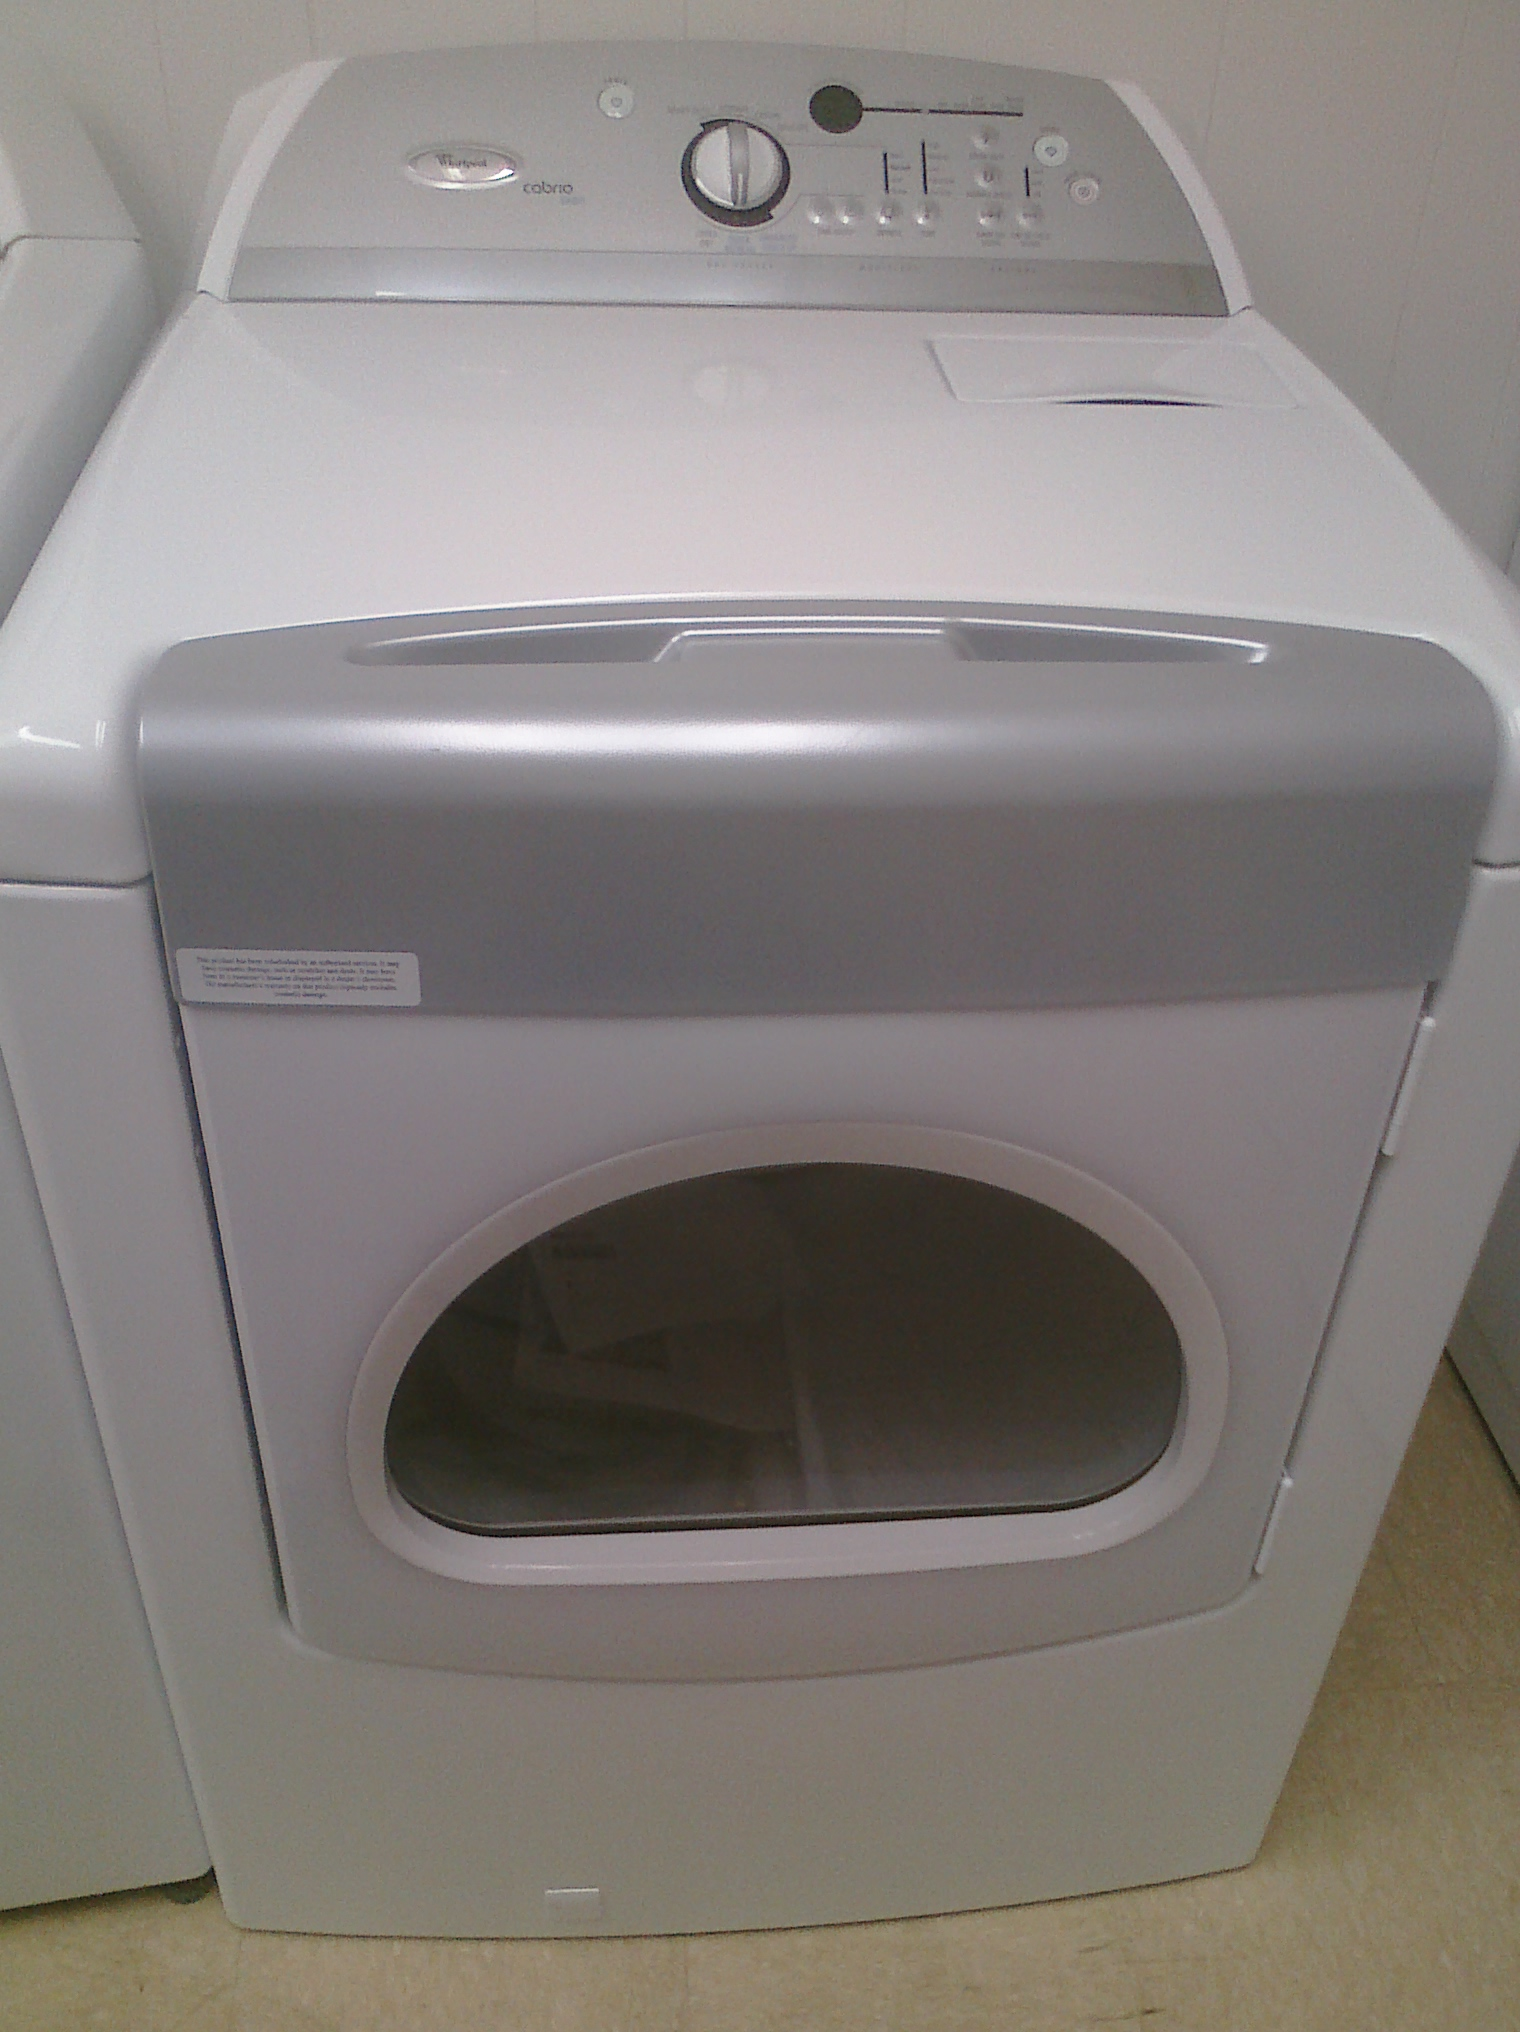 (9) Whirlpool WGD6600VW Cabrio Steam Gas Dryer, White